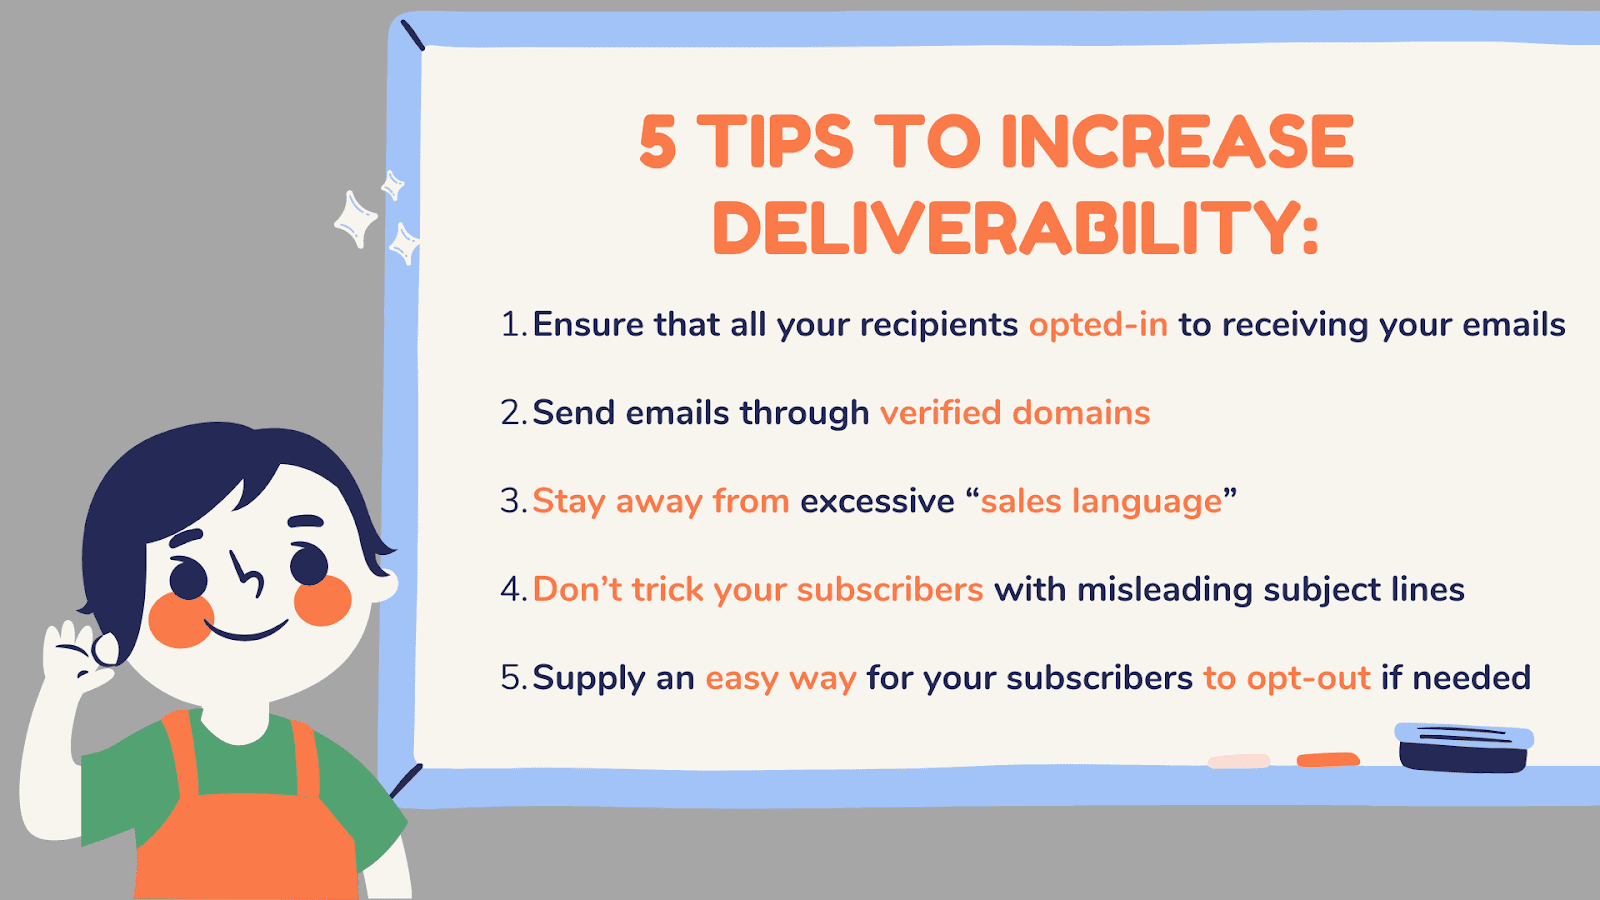 5 tips to increase deliverability